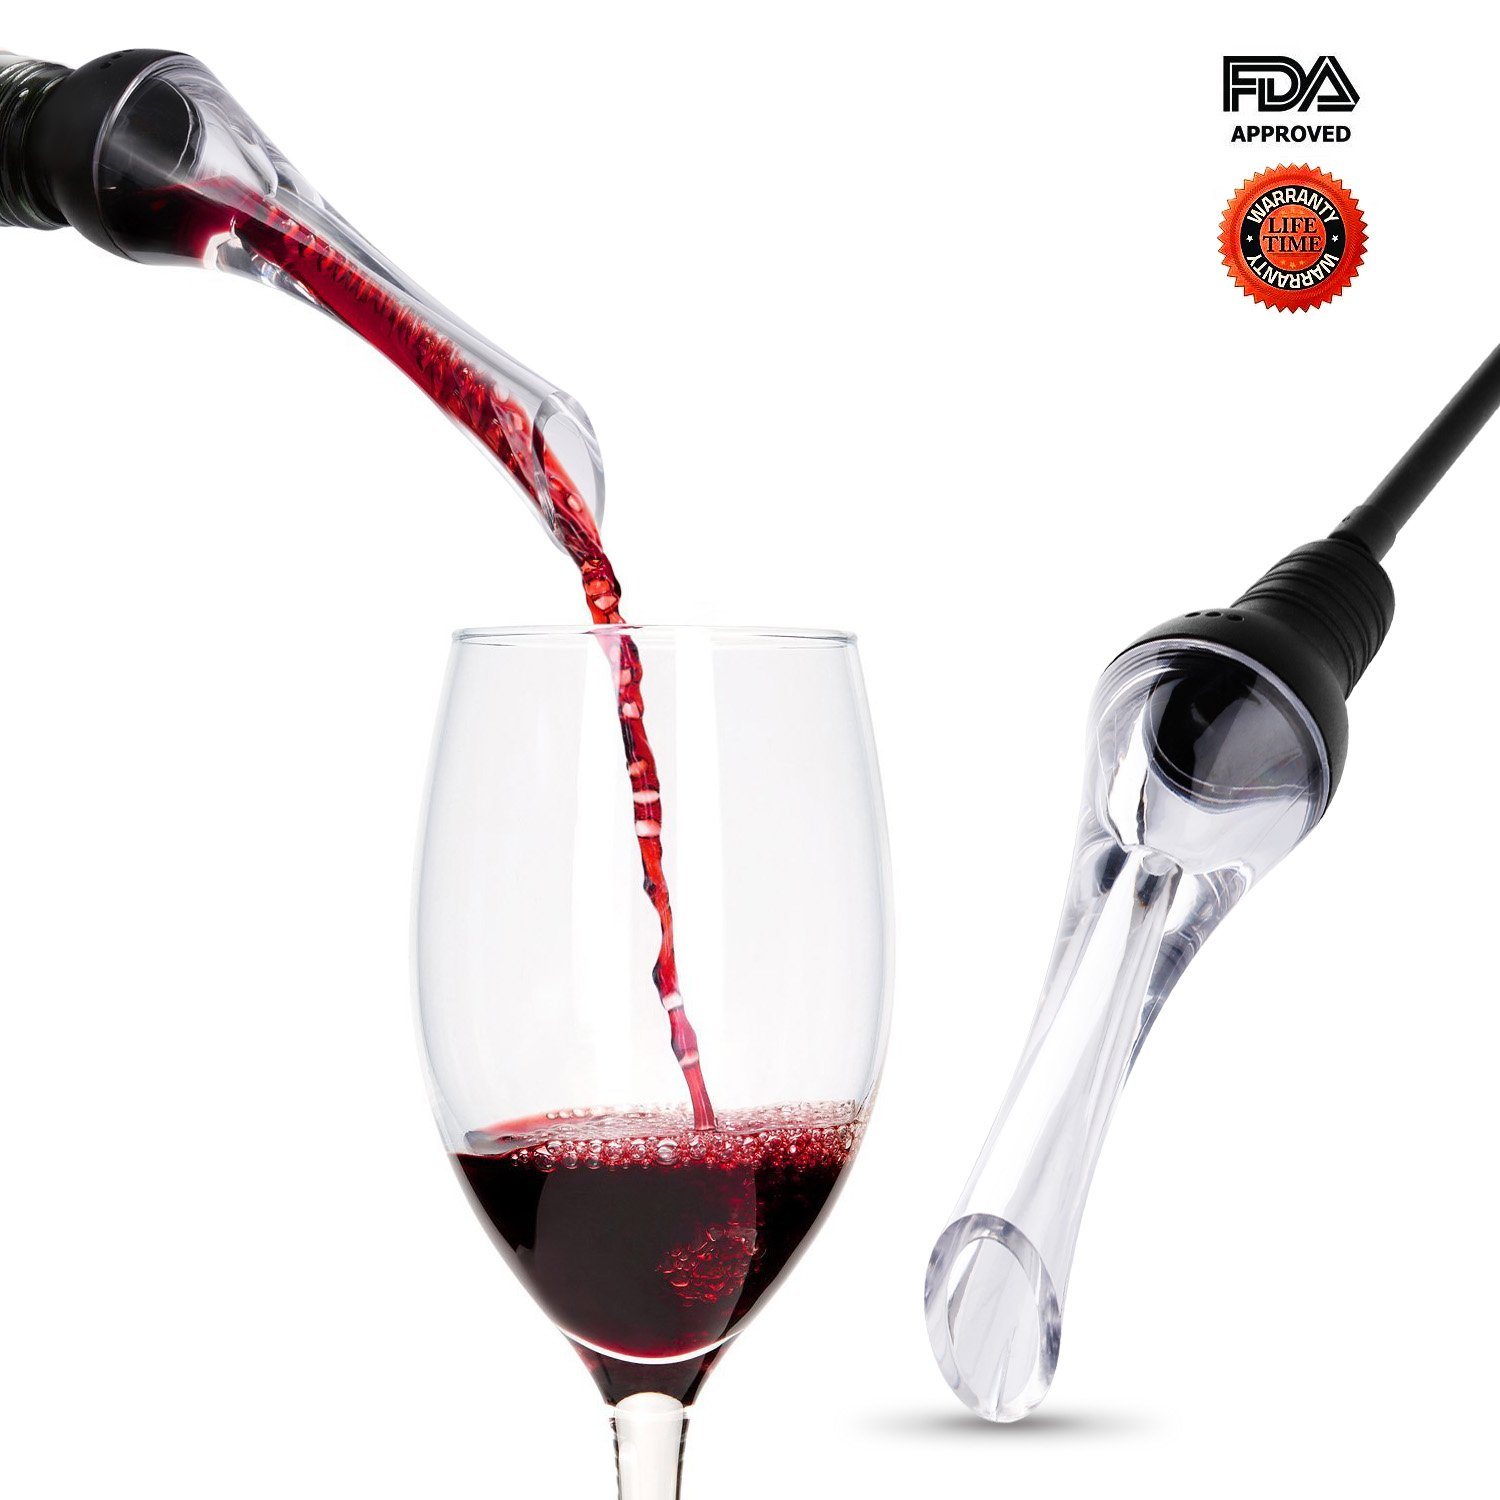 Wine Aerator Pourer,  Premium Aerating Pourer and Decanter Spout, Breather Excellent for Whiskey by MOSPRO (Image #1)